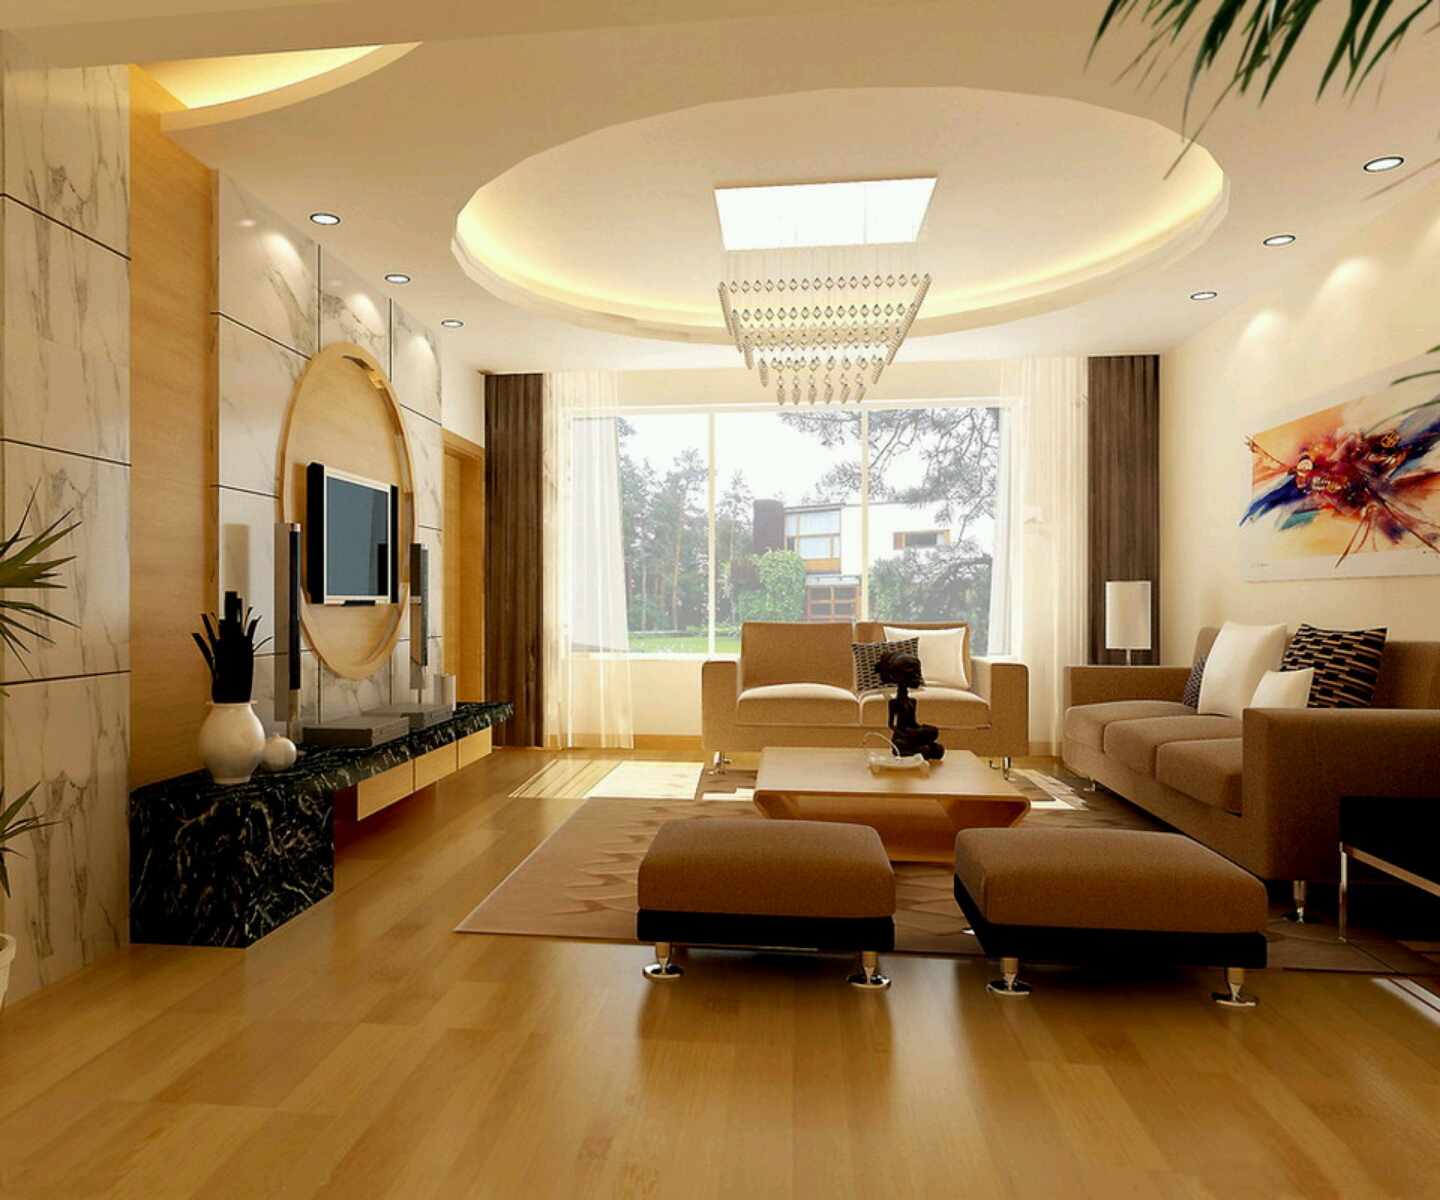 Modern interior decoration living rooms ceiling designs ideas new home designs - Modern home design interior ...